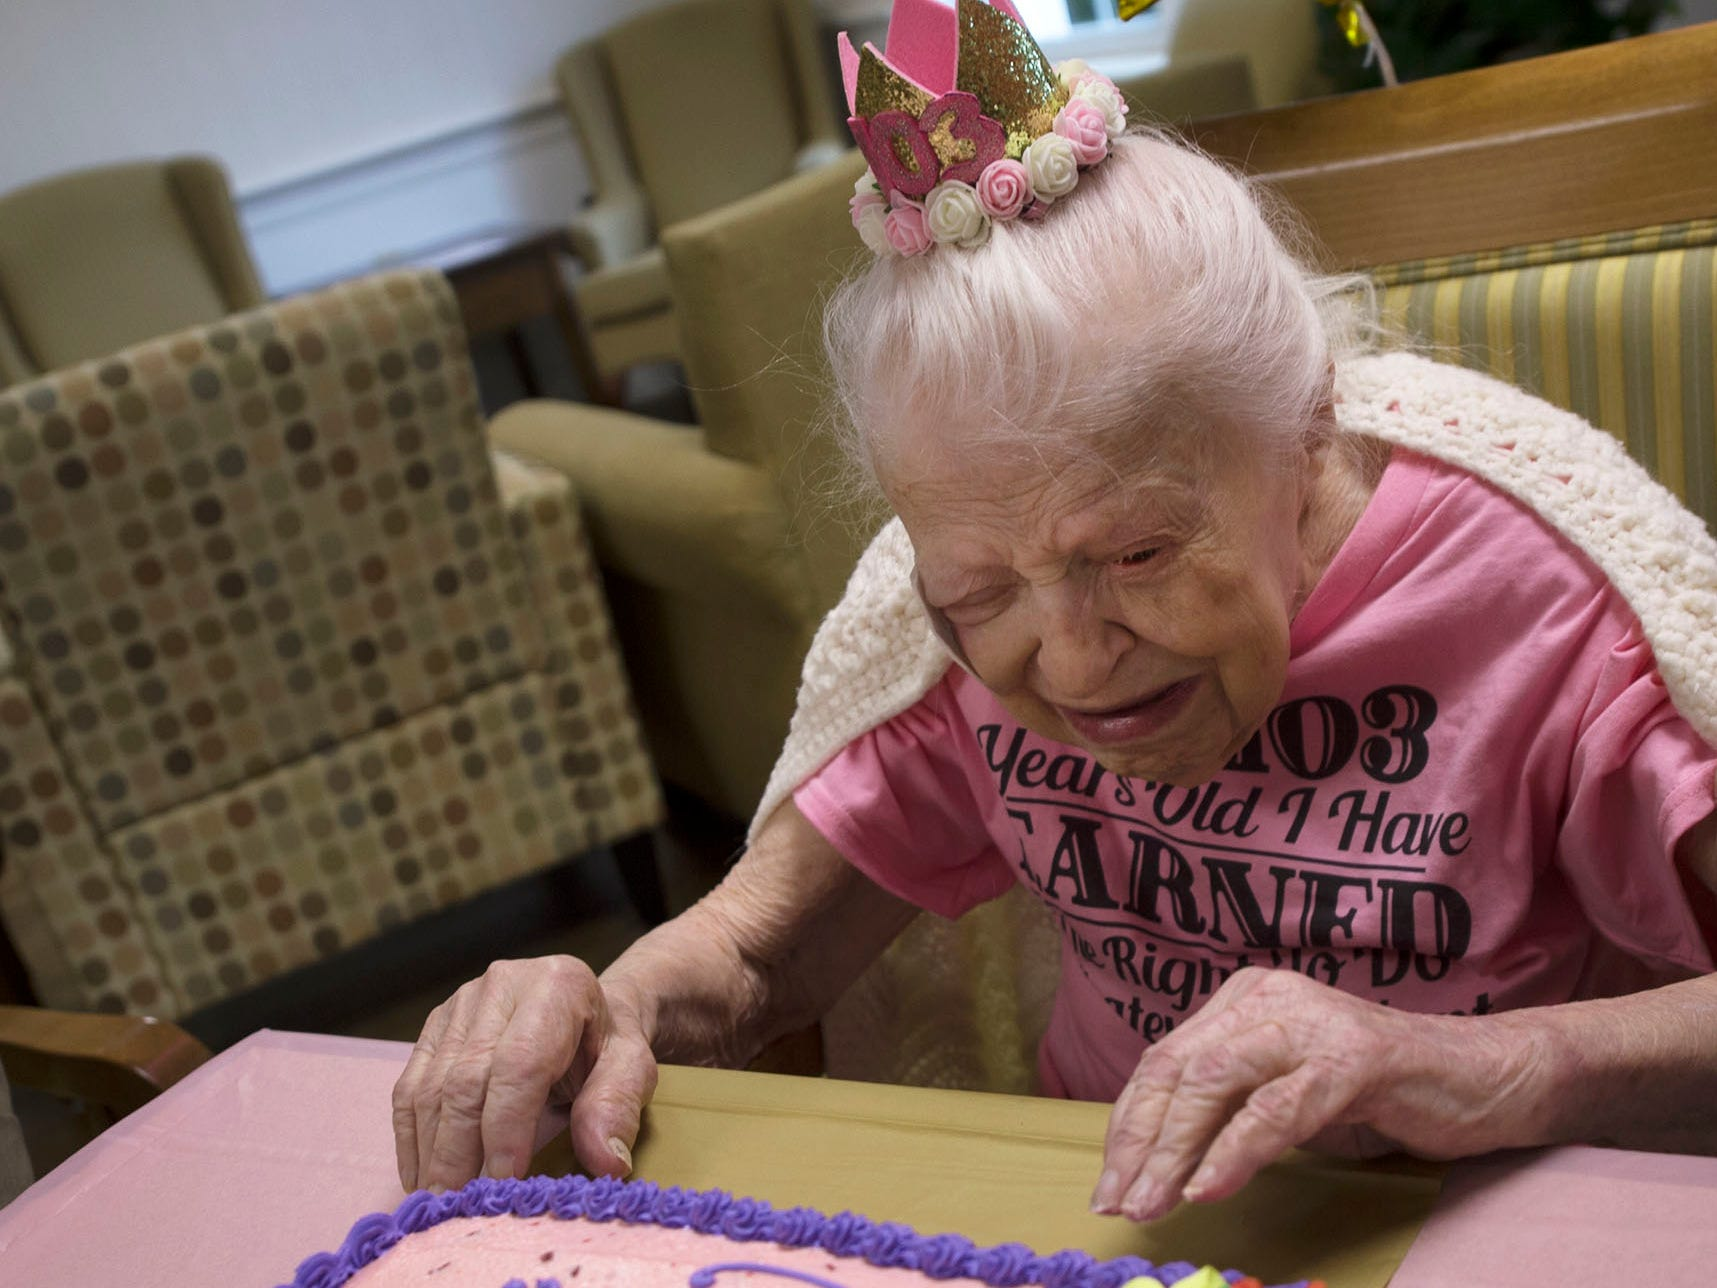 Lillian Hoff, who turned 103-years-old, celebrates her birthday party on Monday, September 10, 2018 at Providence Place, Chambersburg. Hoff, a homemaker,  was born in 1915 in Akron, OH, and raised her three children in Cleveland. Family, staff and their children attended the party in the facility's terrace.